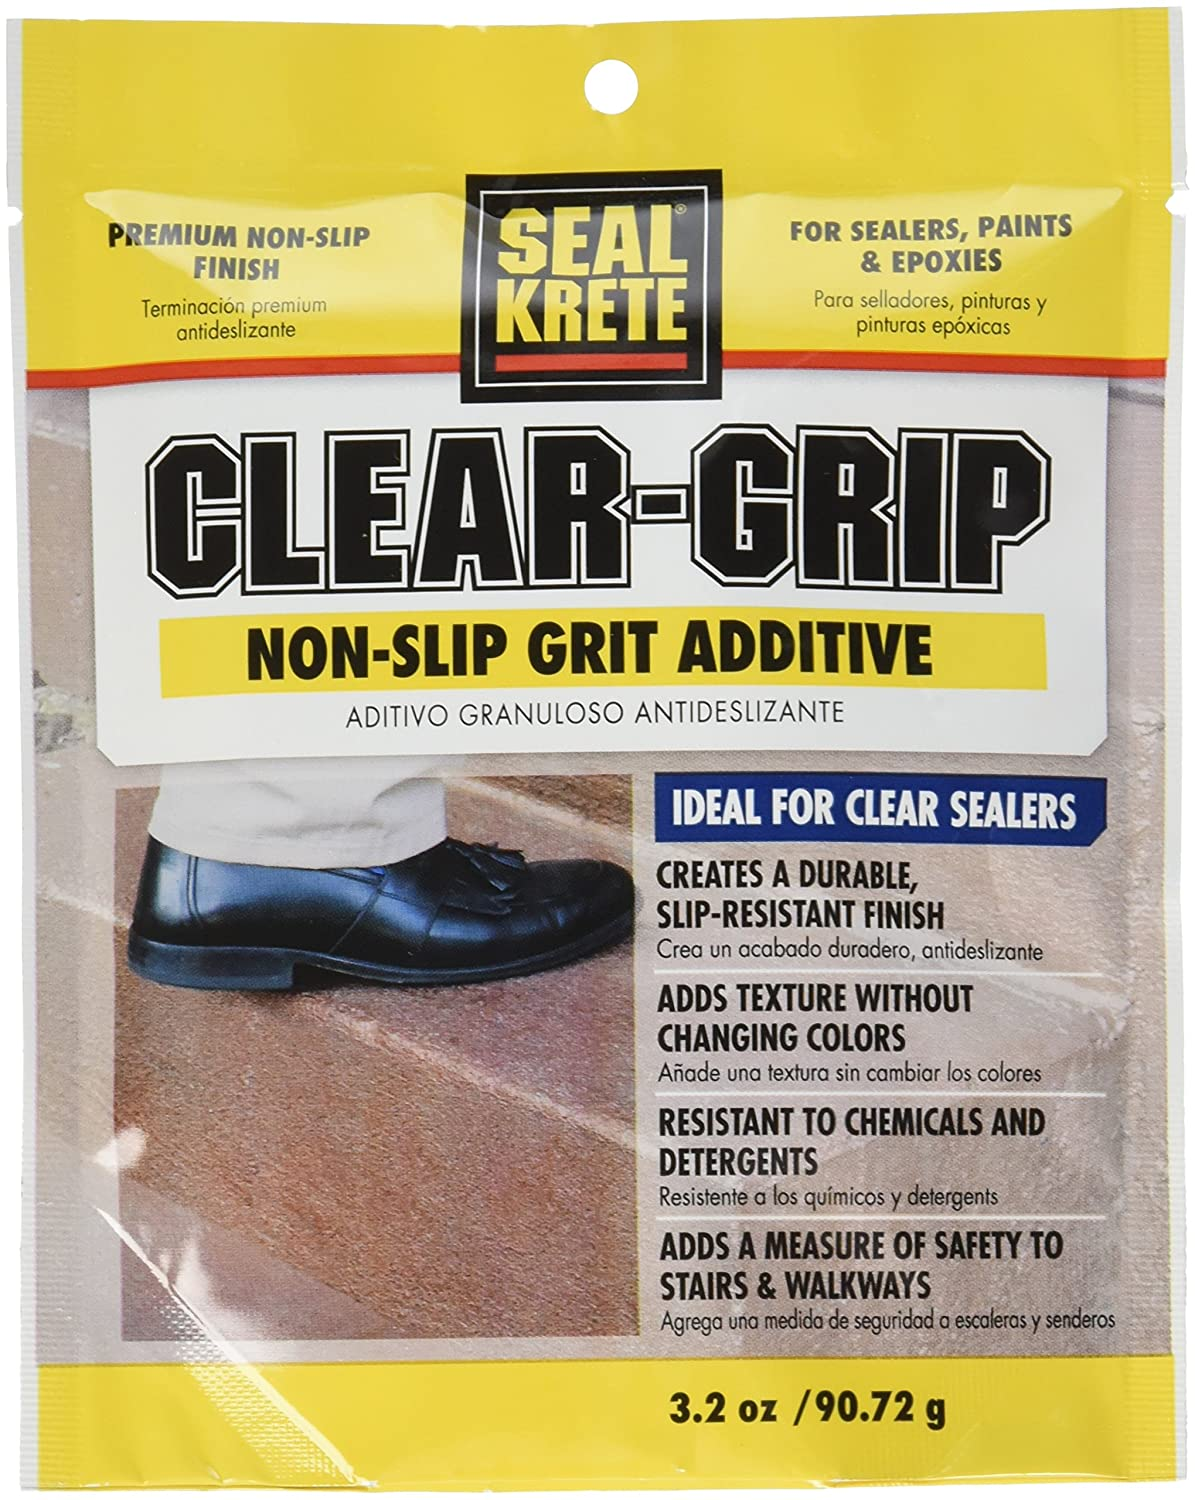 Non slip paint for stairs - Amazon Com Seal Krete 40202 Clear Grip Non Skid Grip Additive For Sealers Paints Epoxies Home Improvement